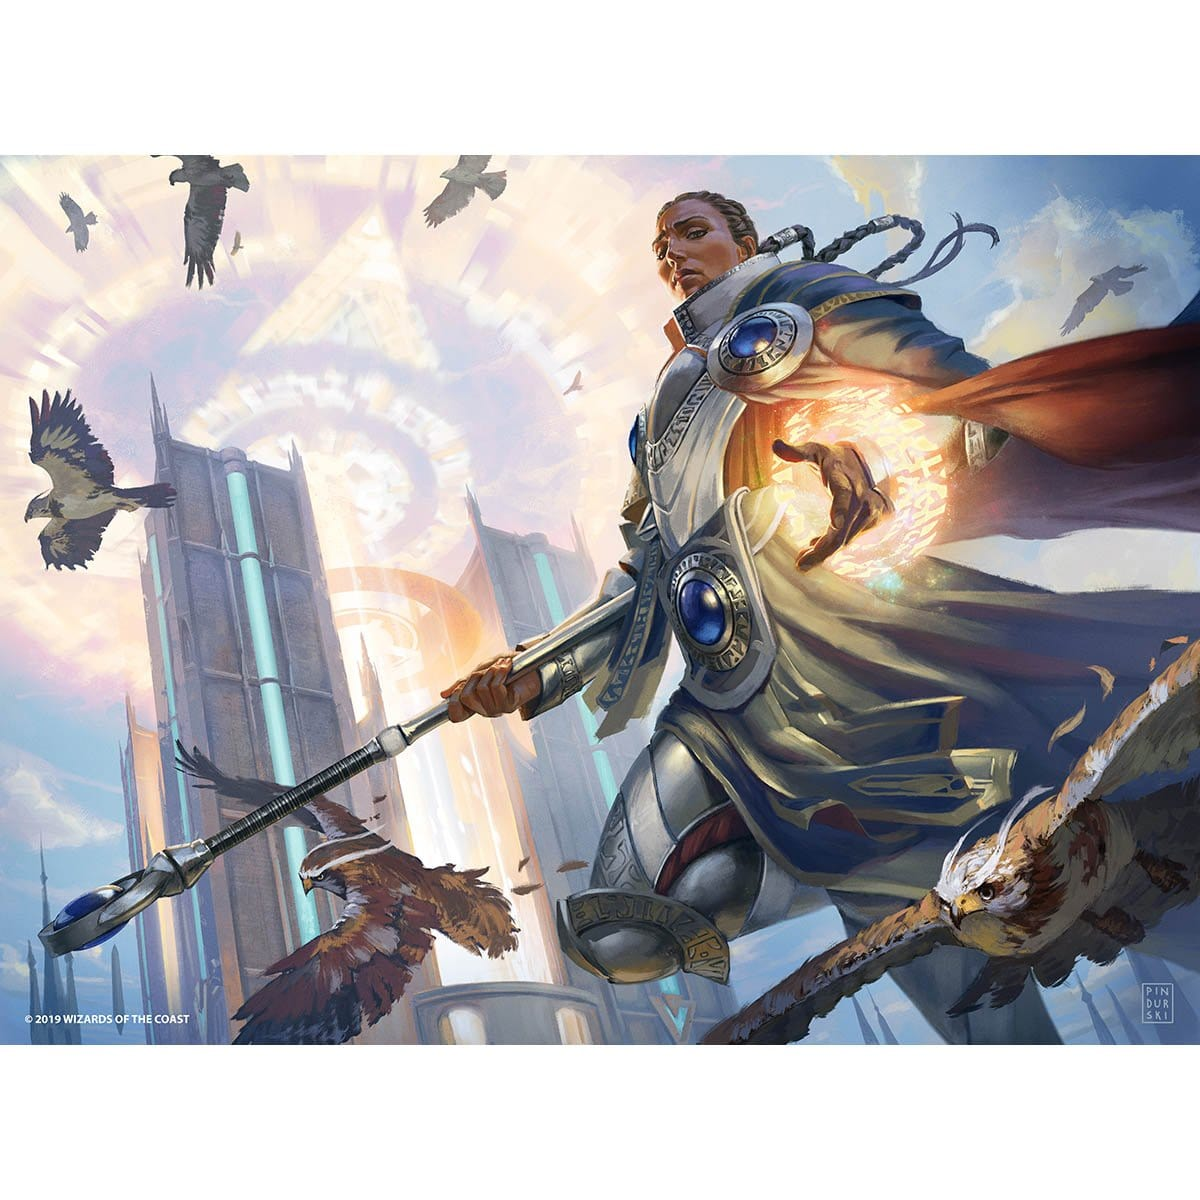 Elite Guardmage Print - Print - Original Magic Art - Accessories for Magic the Gathering and other card games